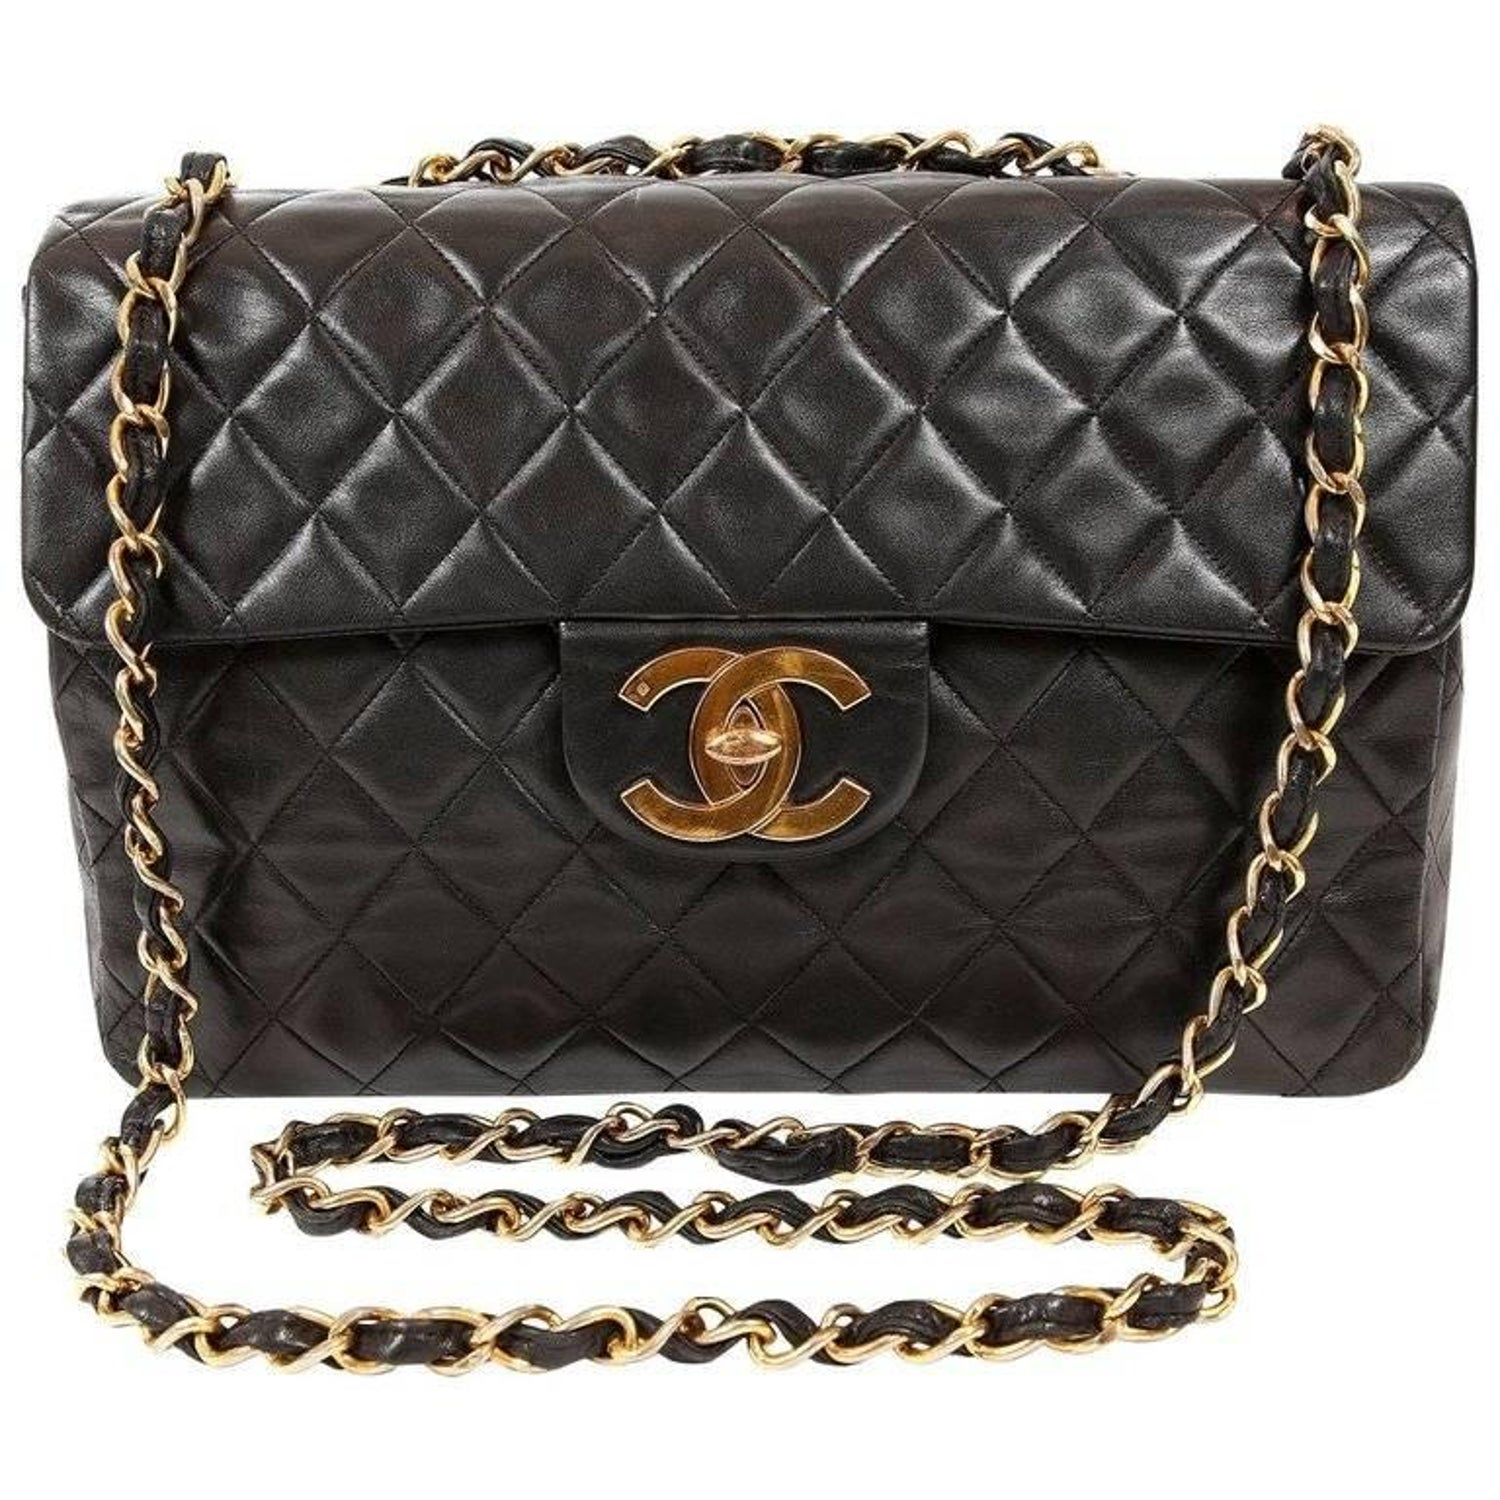 7917d9b4aa2048 Chanel Vintage Black Lambskin Maxi Classic Flap with Gold Hardware at  1stdibs